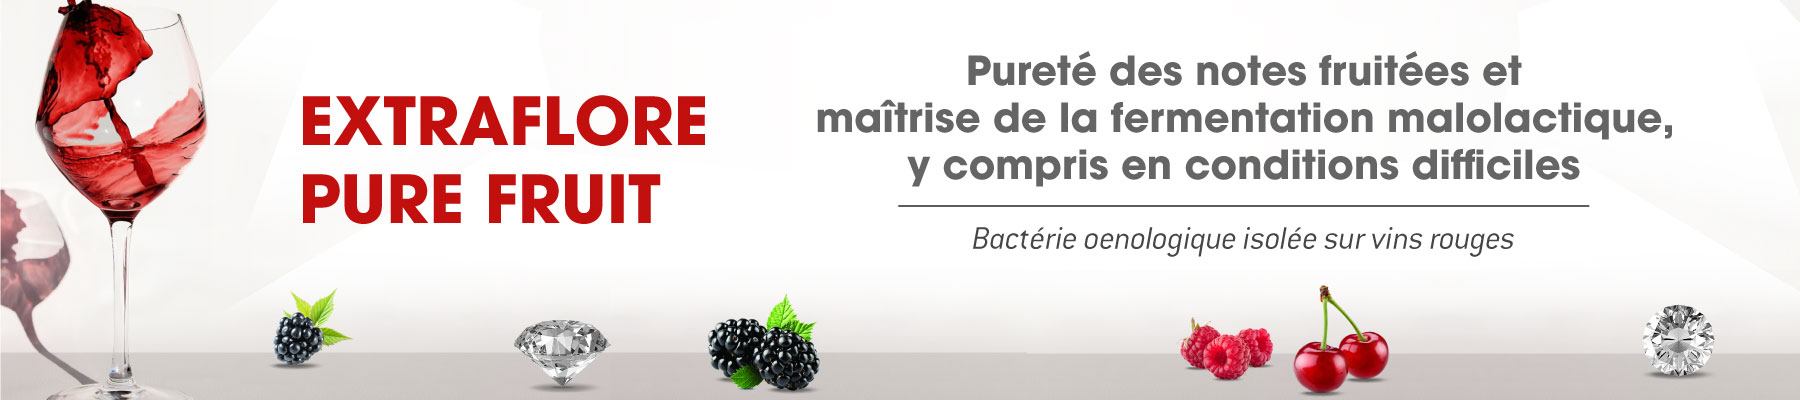 EXTRAFLORE PURE FRUIT